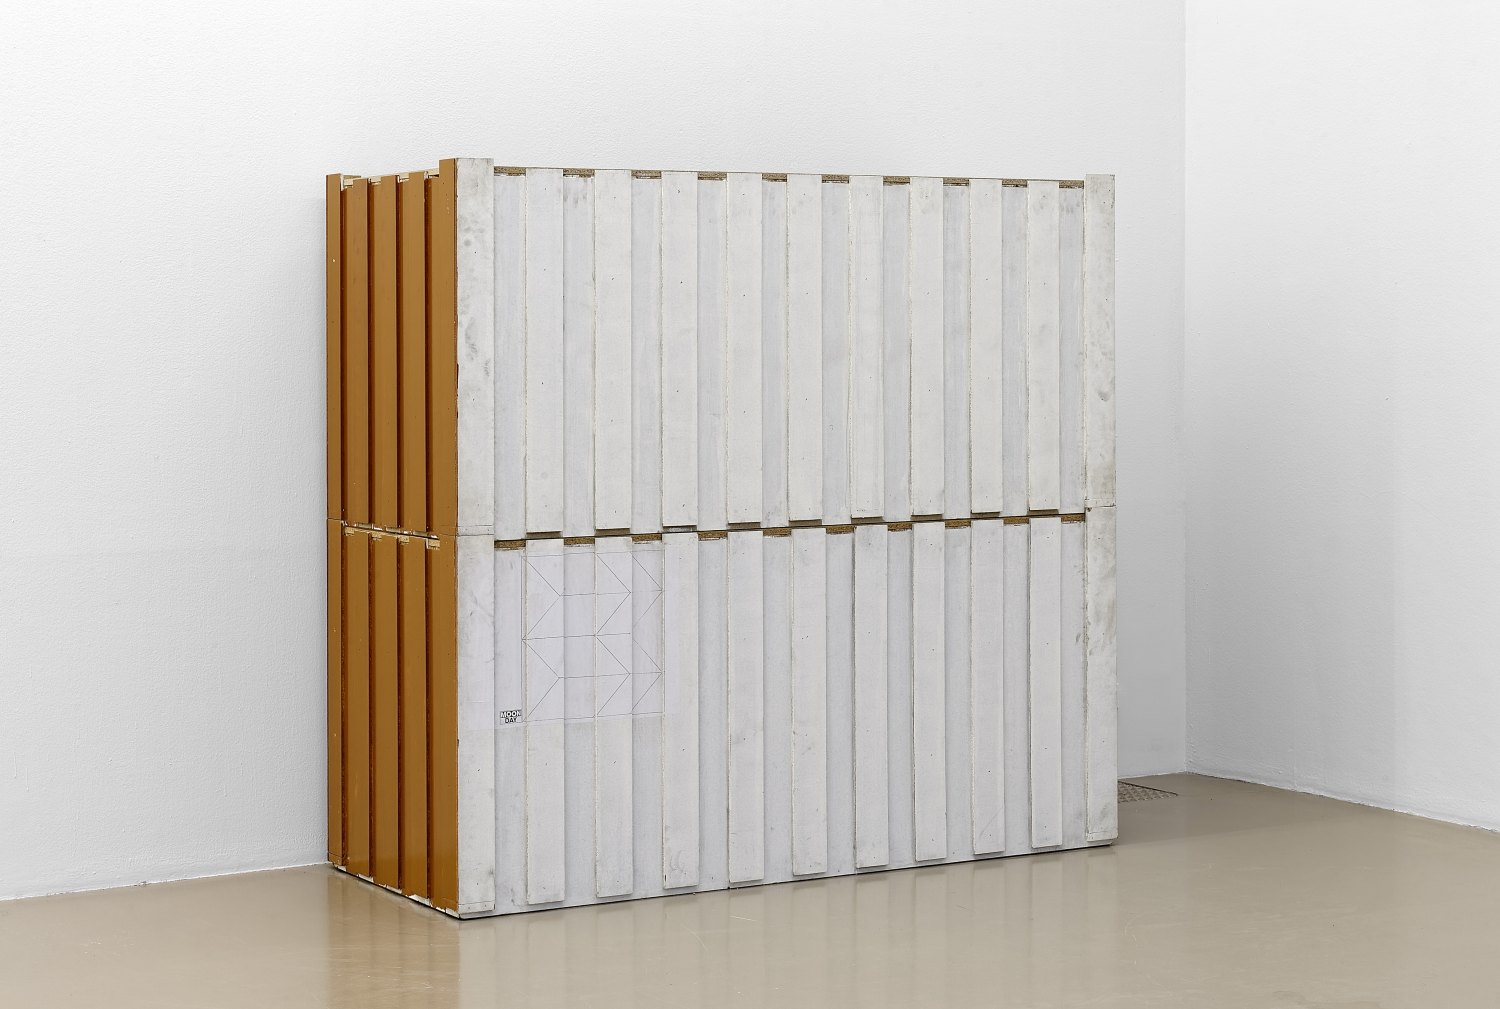 Manfred Pernice Bell II, 1-14 (No4+5), 1998  Chipboard, synthetic resin varnish  each, 95 × 201.5 × 86.5 cm